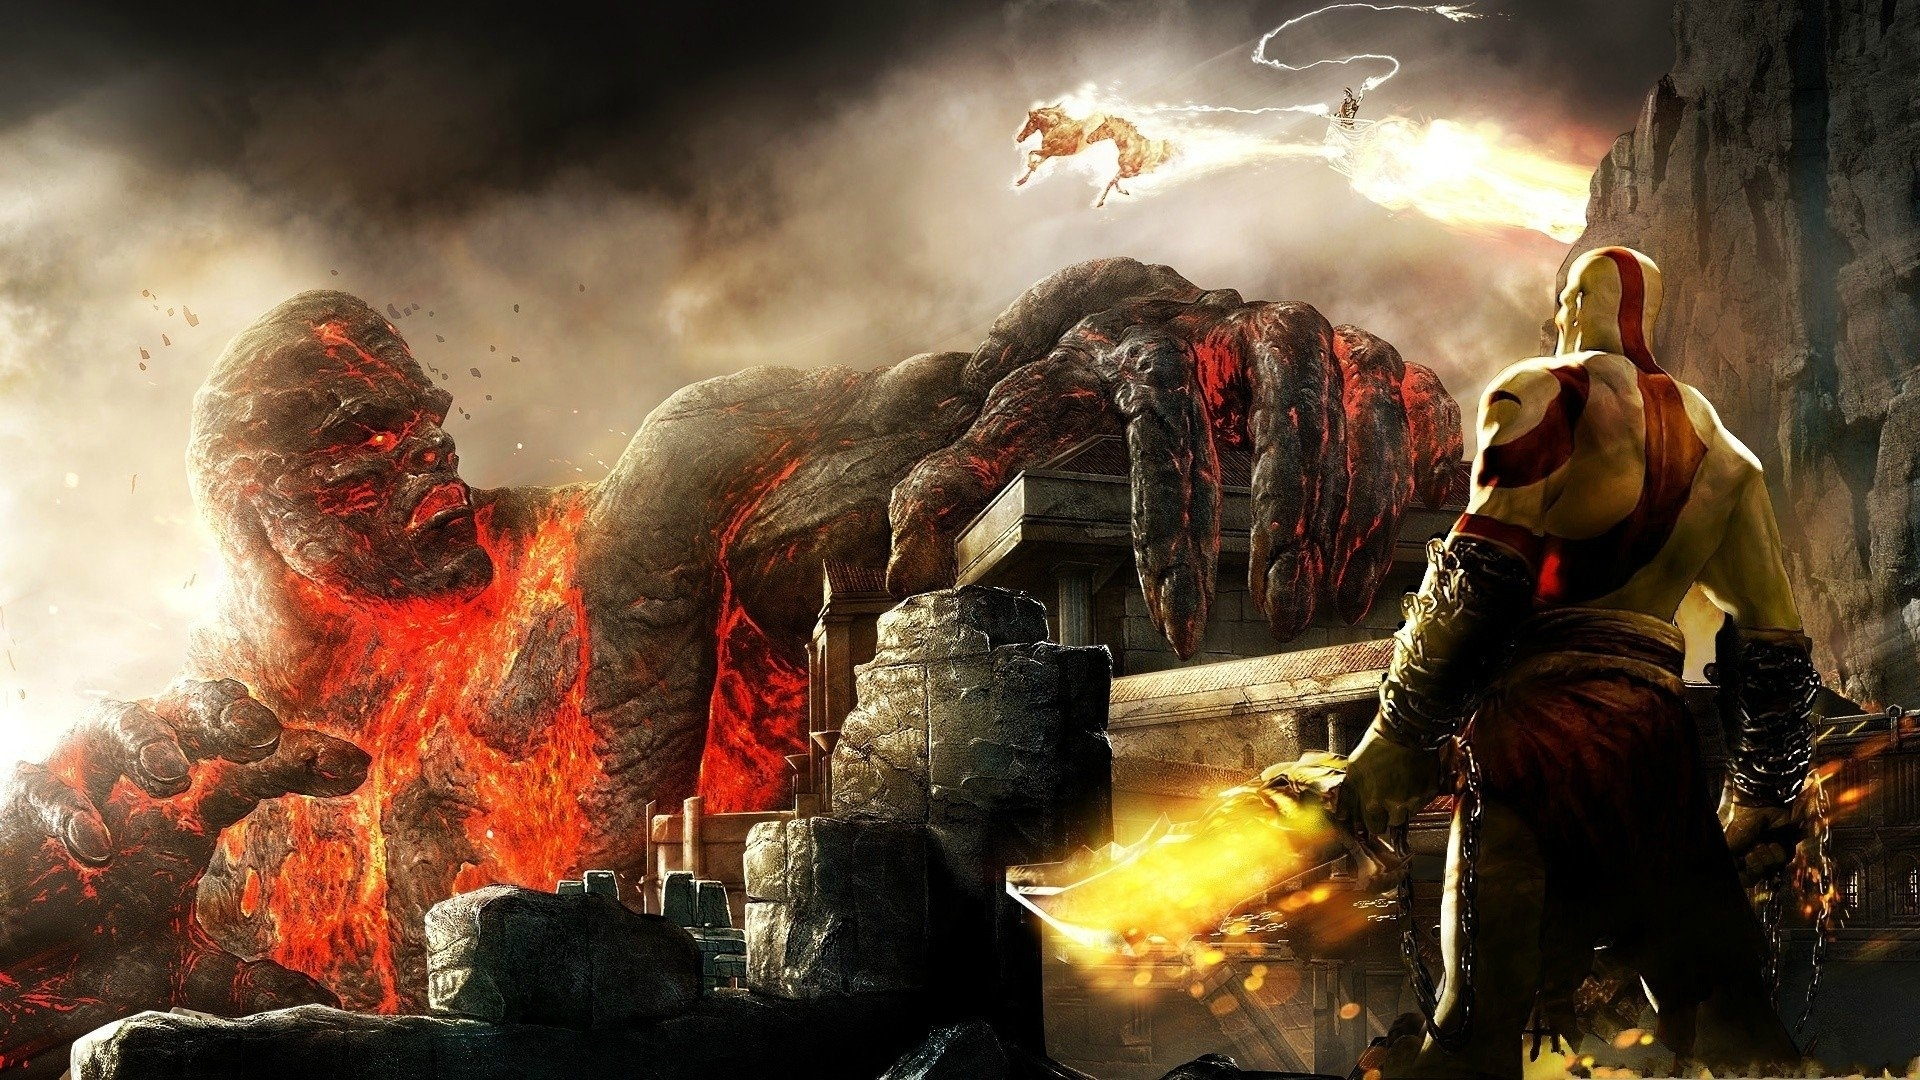 44 god of war iii hd wallpapers | background images - wallpaper abyss